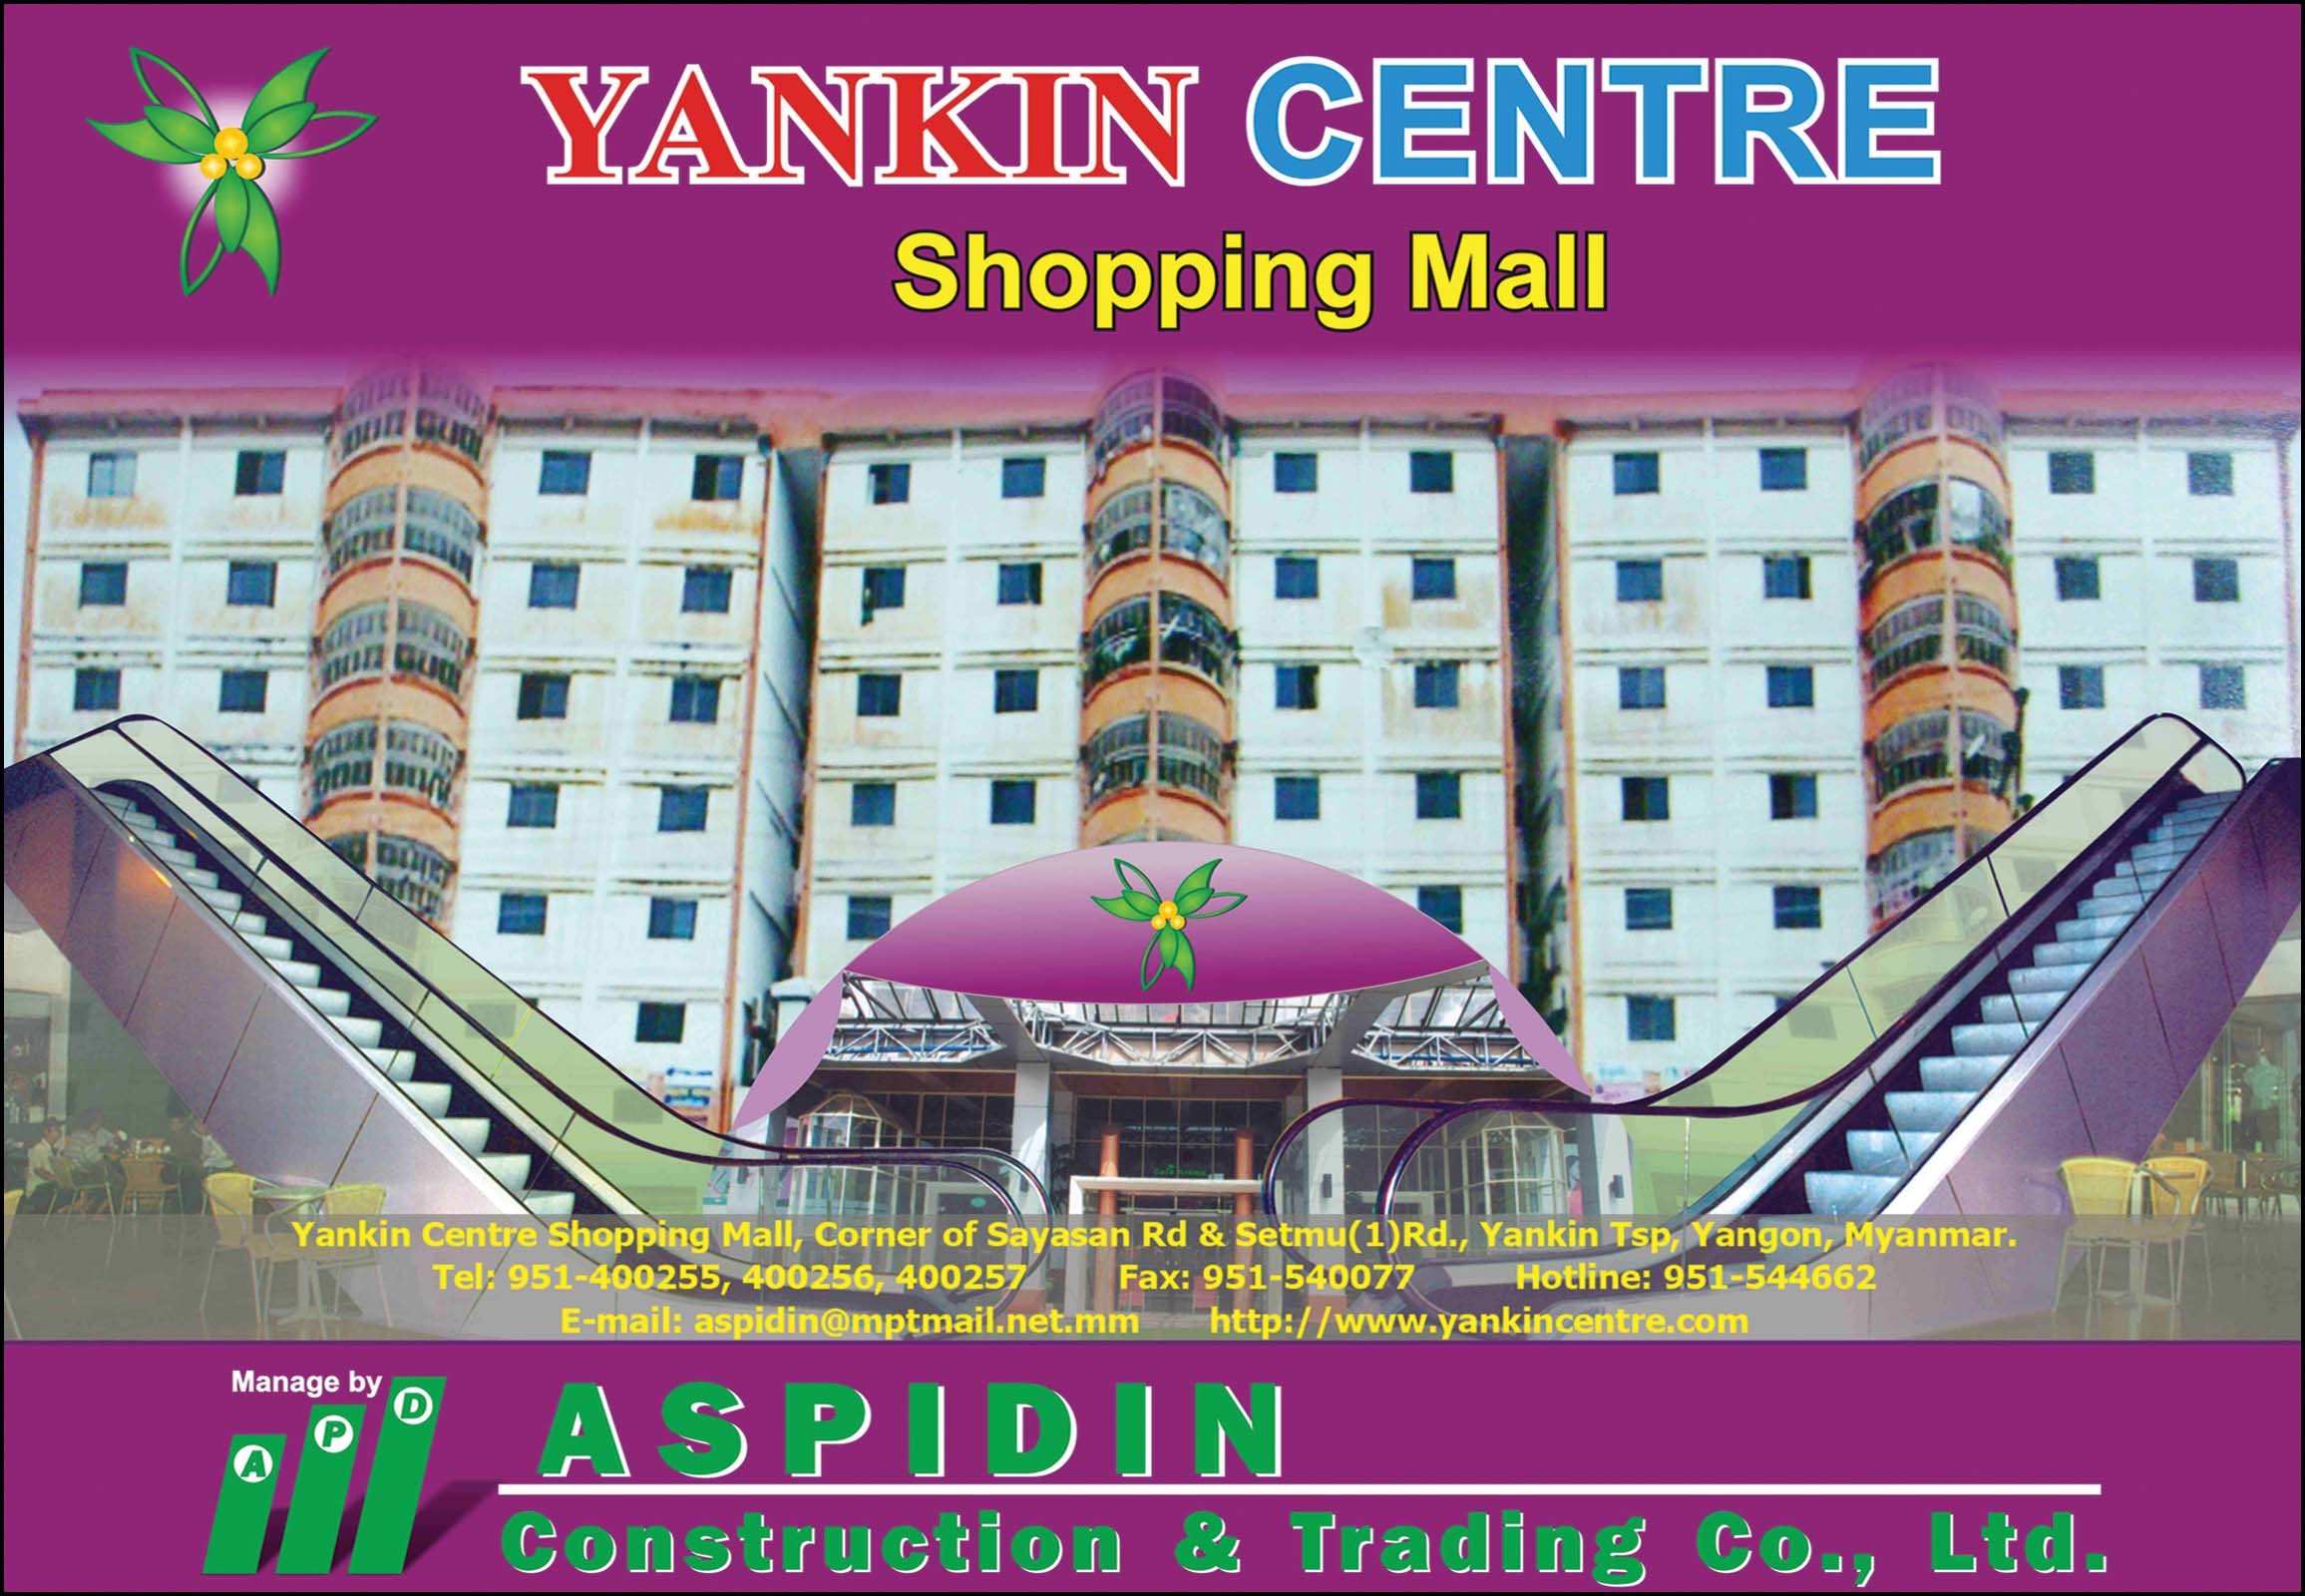 ASPIDIN Construction and Trading Co., Ltd.